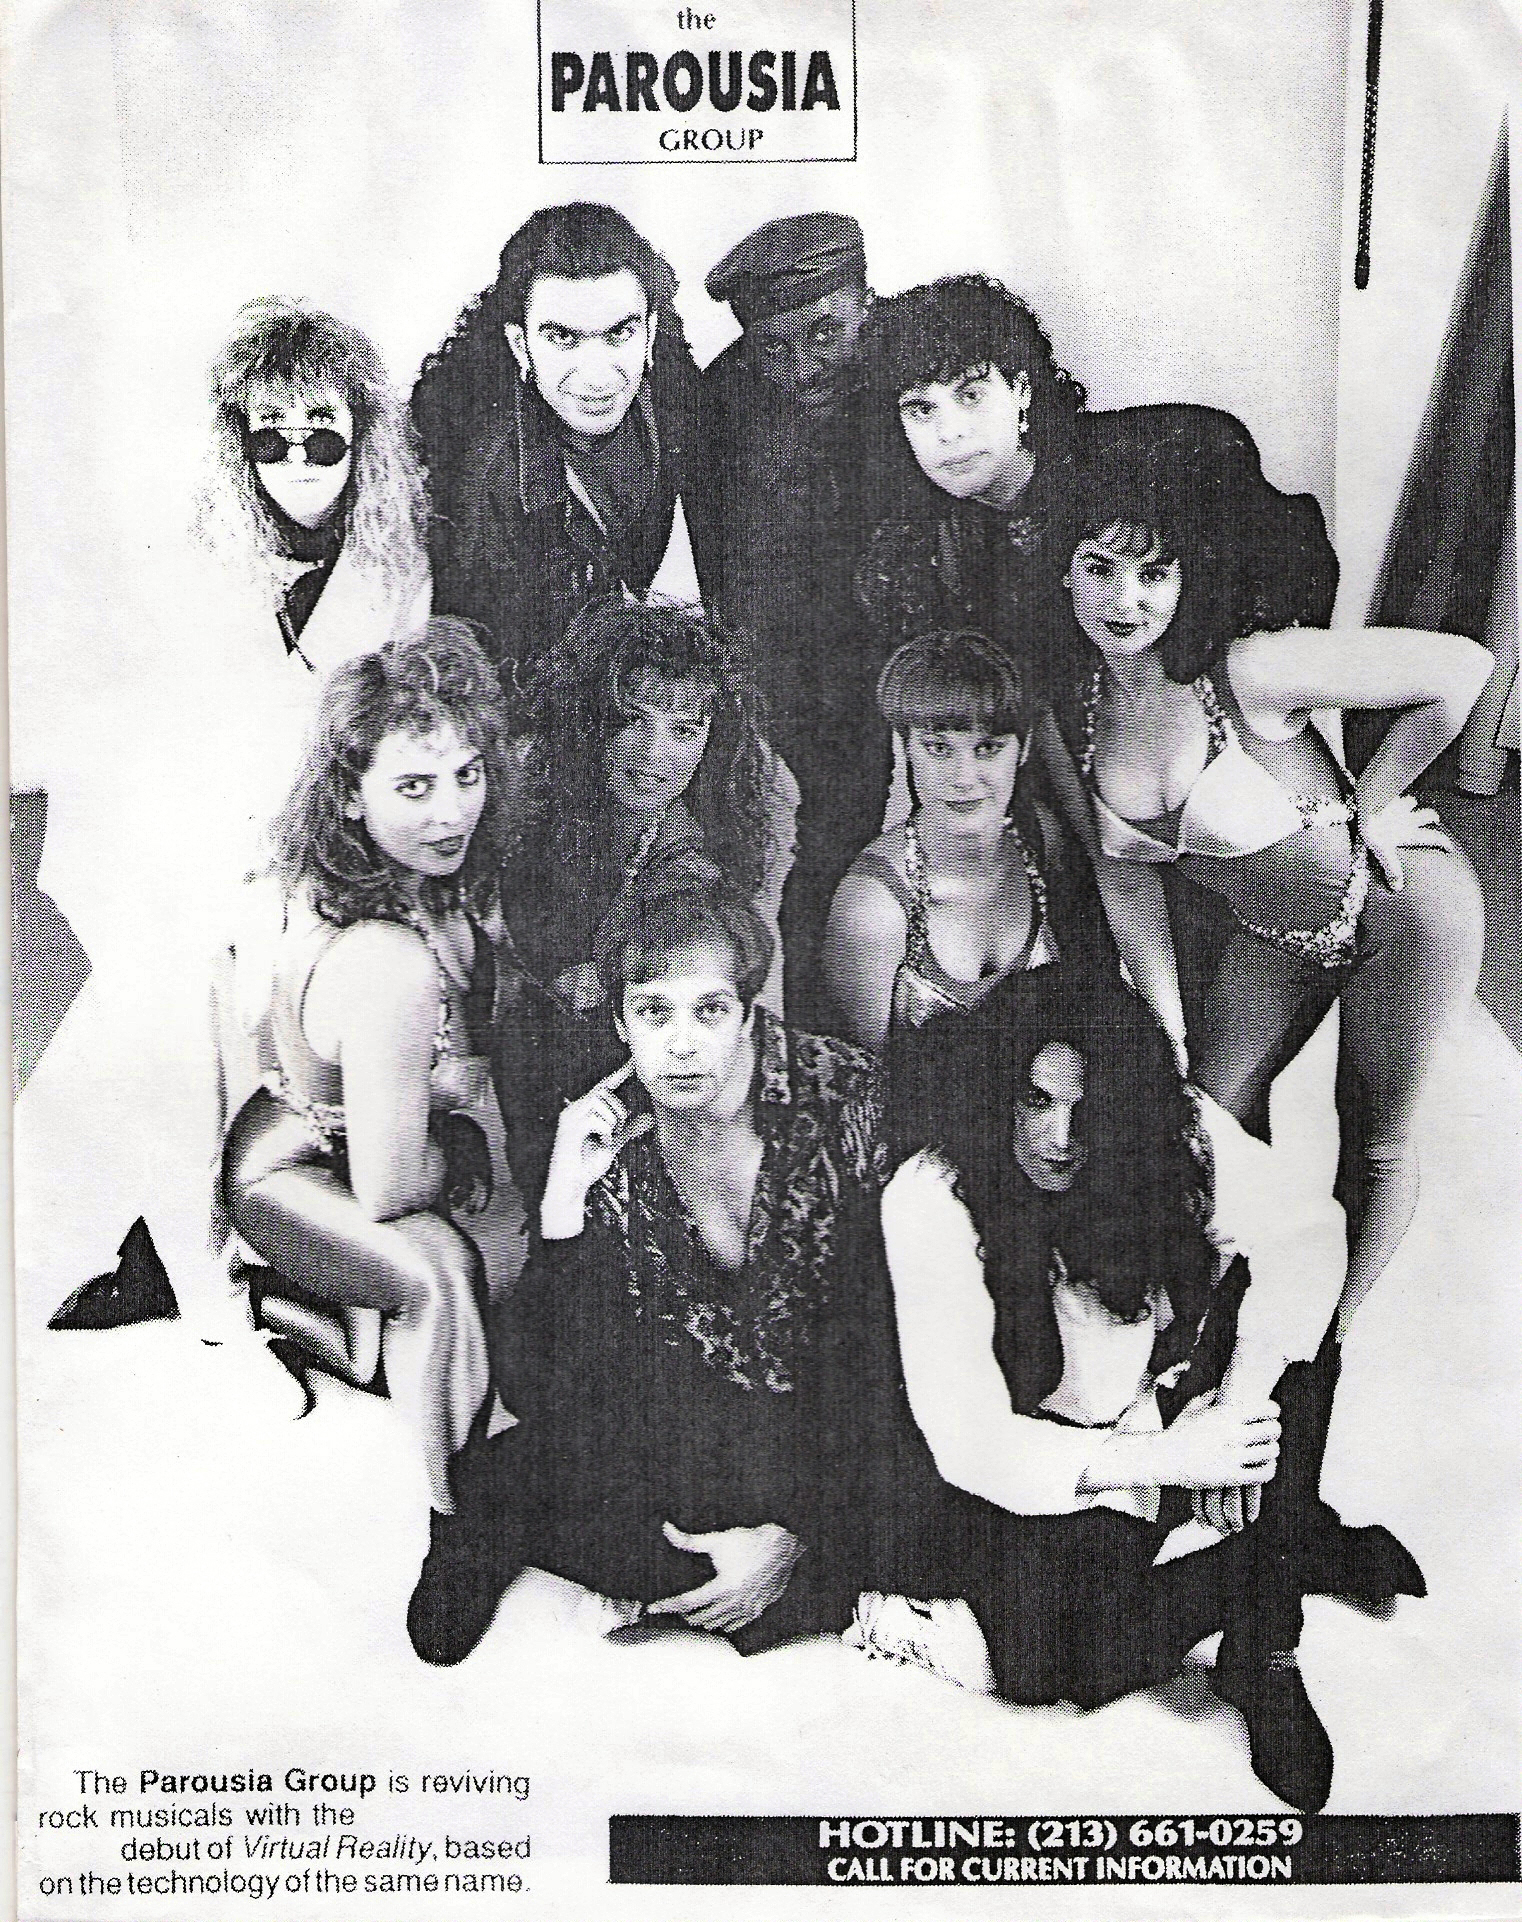 Parousia Group reviving rock musicals 1991